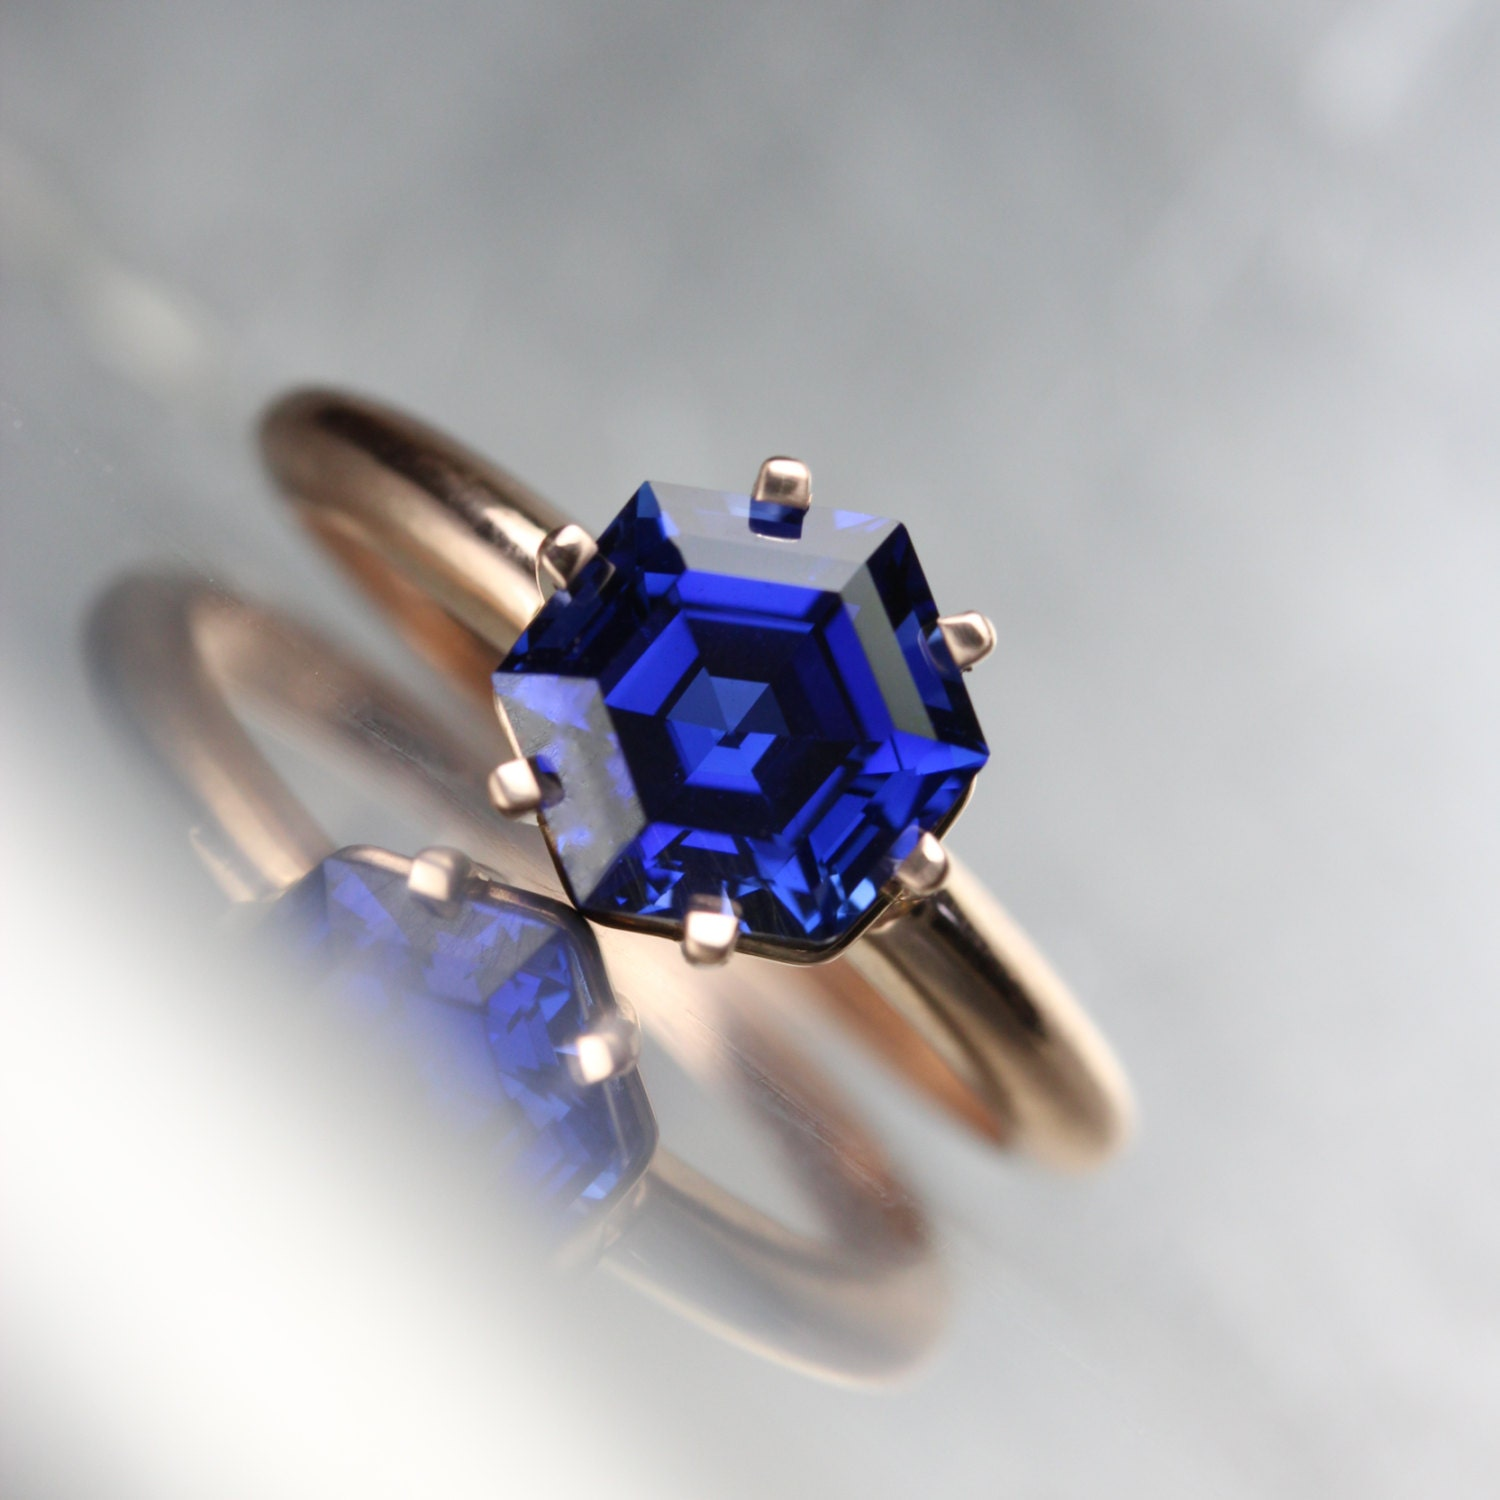 rings star mens diamond plated com blue yellow simulated saffire or sapphire silver ring sterling amazon gold dp